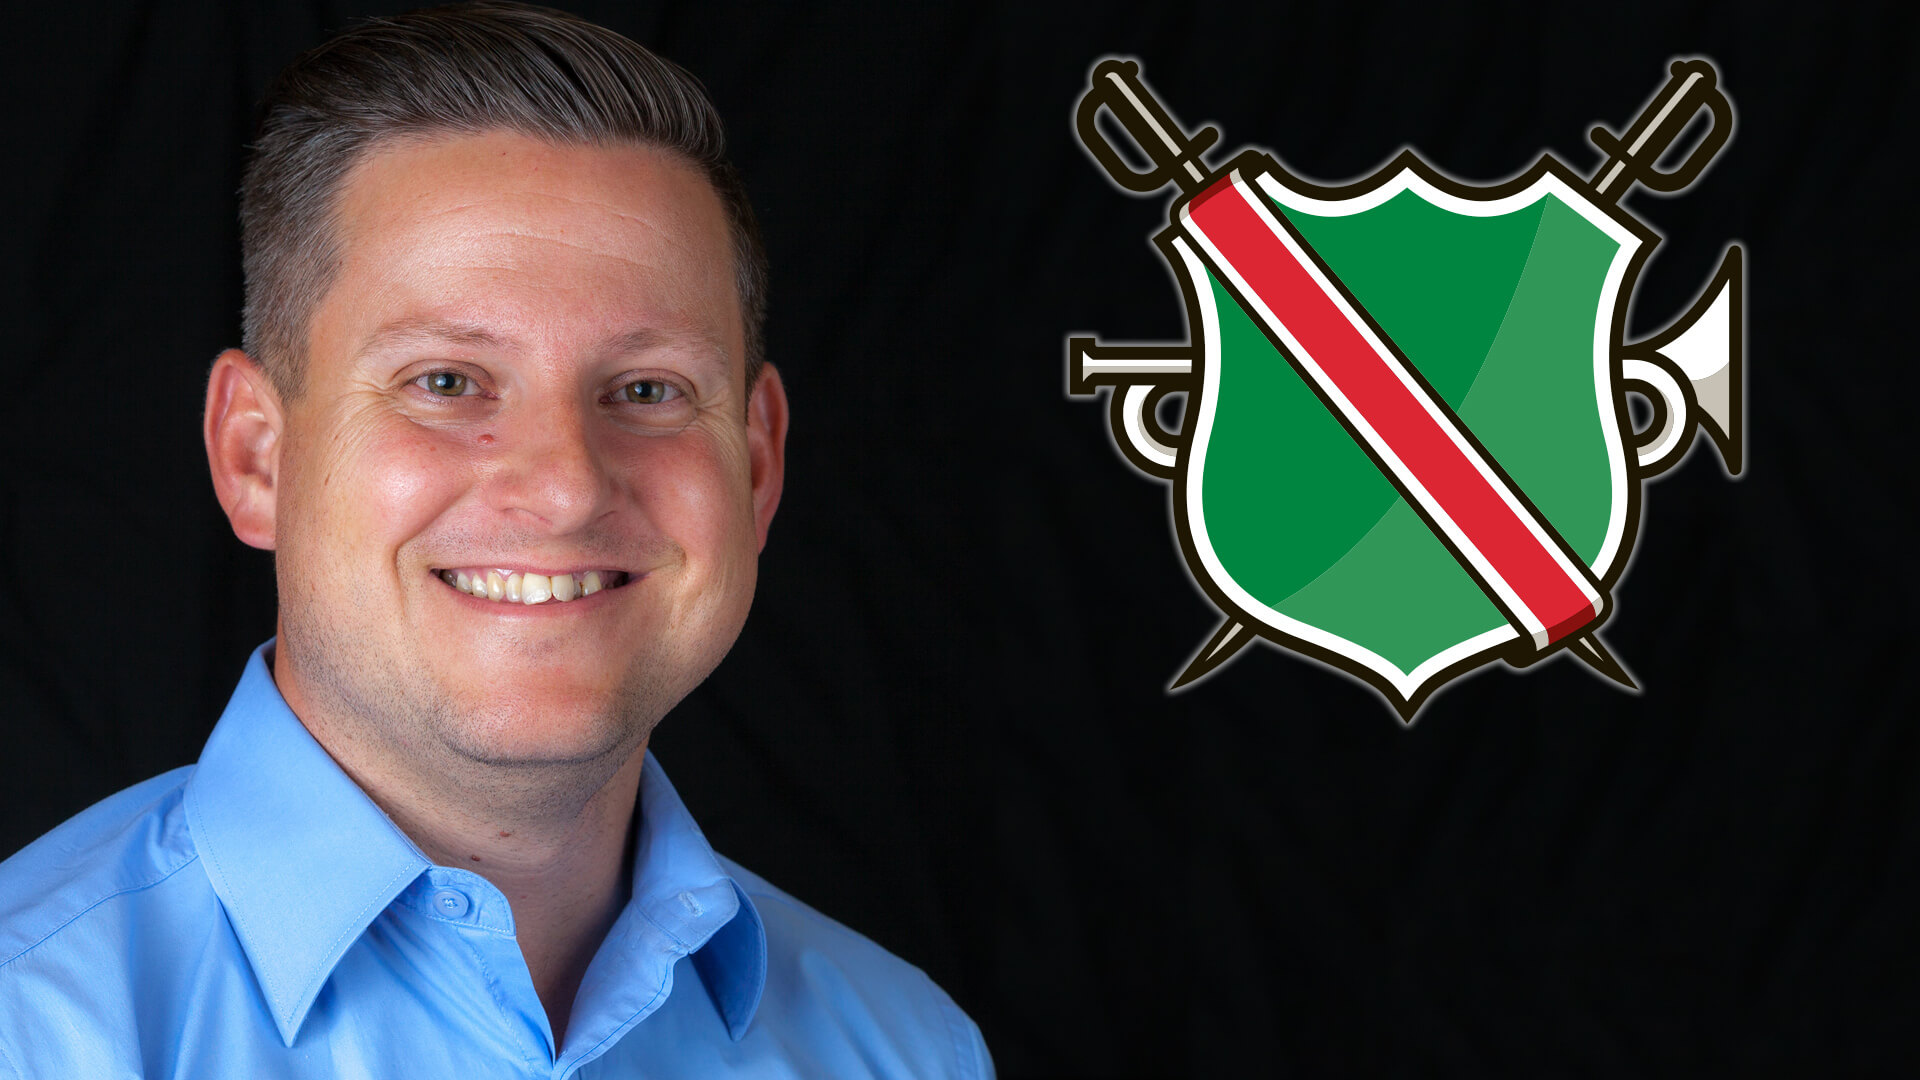 Vanguard's Charles Frost elected to DCI Board of Directors